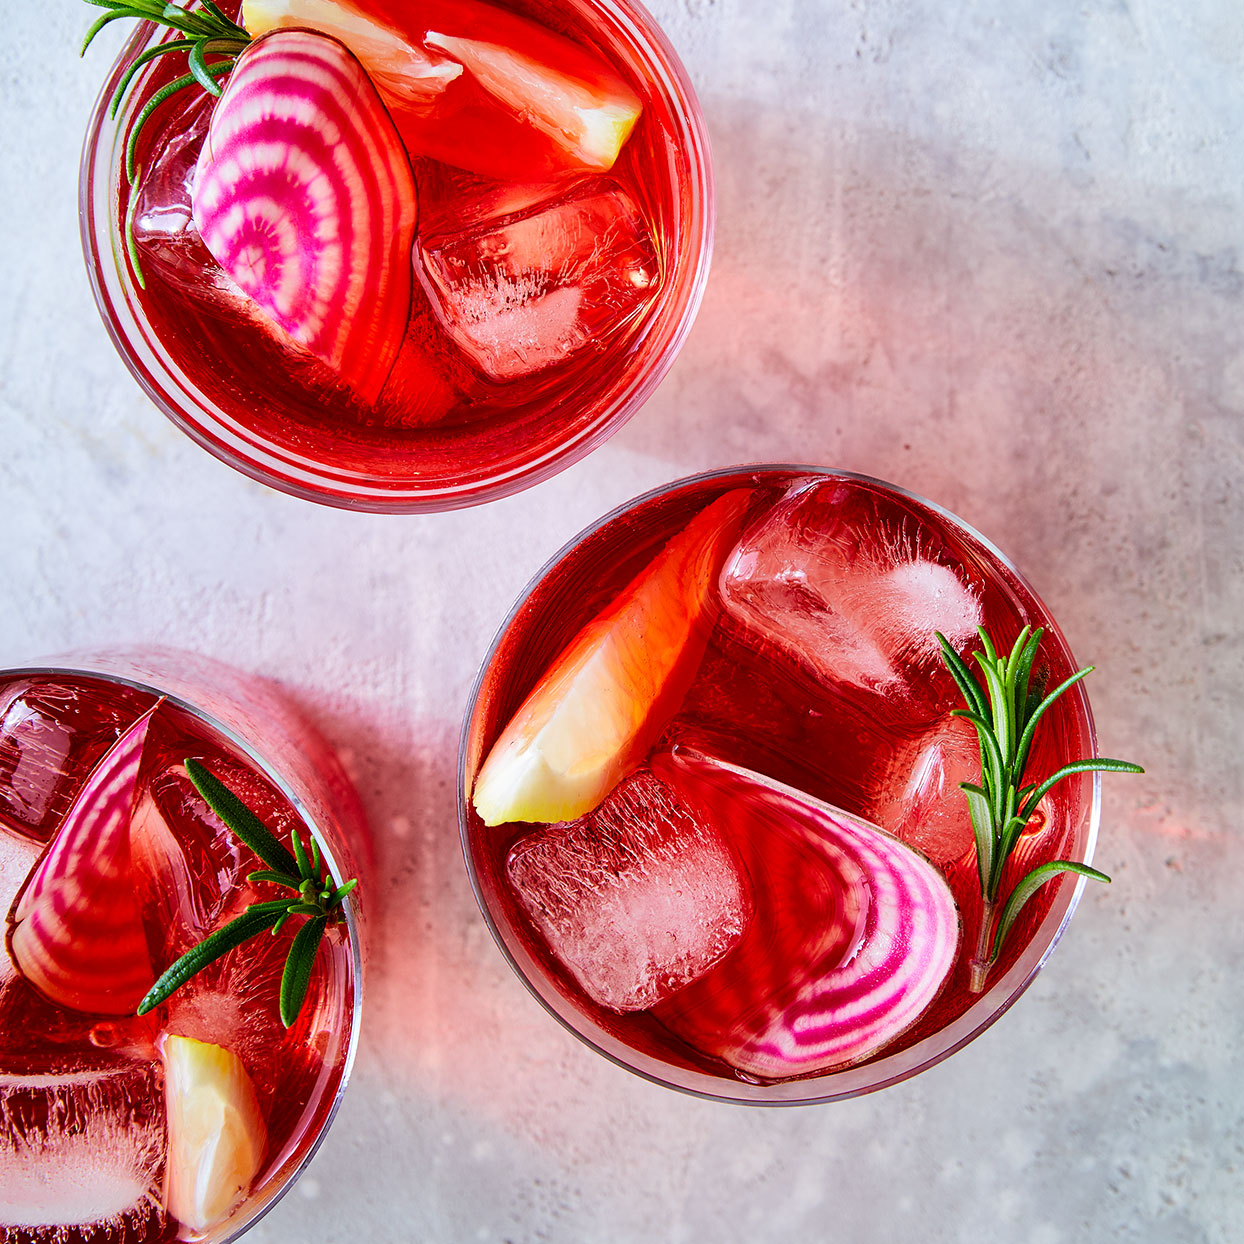 Beet-Infused Gin & Tonic Trusted Brands